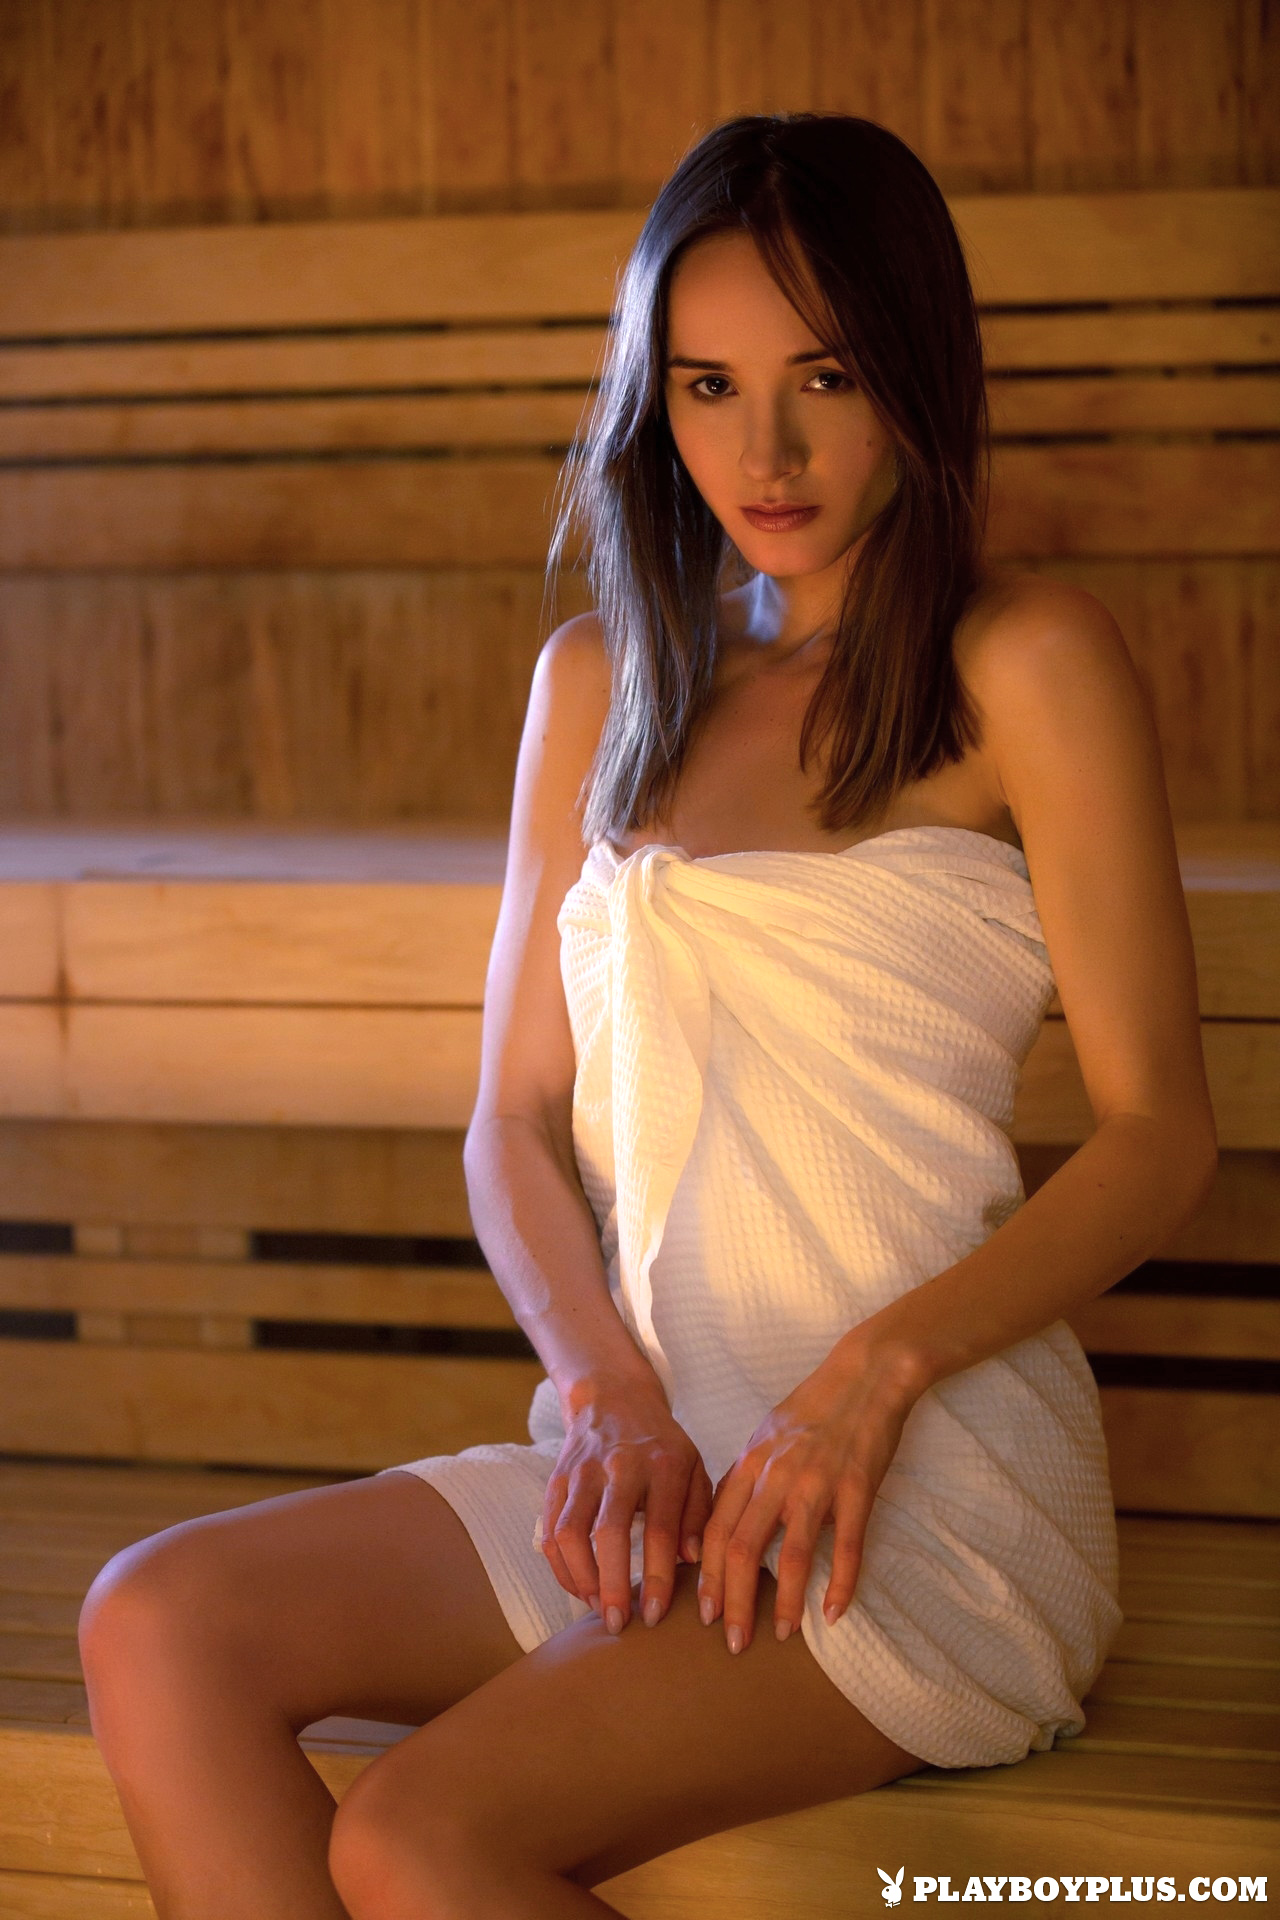 ... Ukrainian model Vi Shy is waiting for you in the sauna. But don't  worry, the towel quickly slides down so that you could enjoy her nude  beauty.